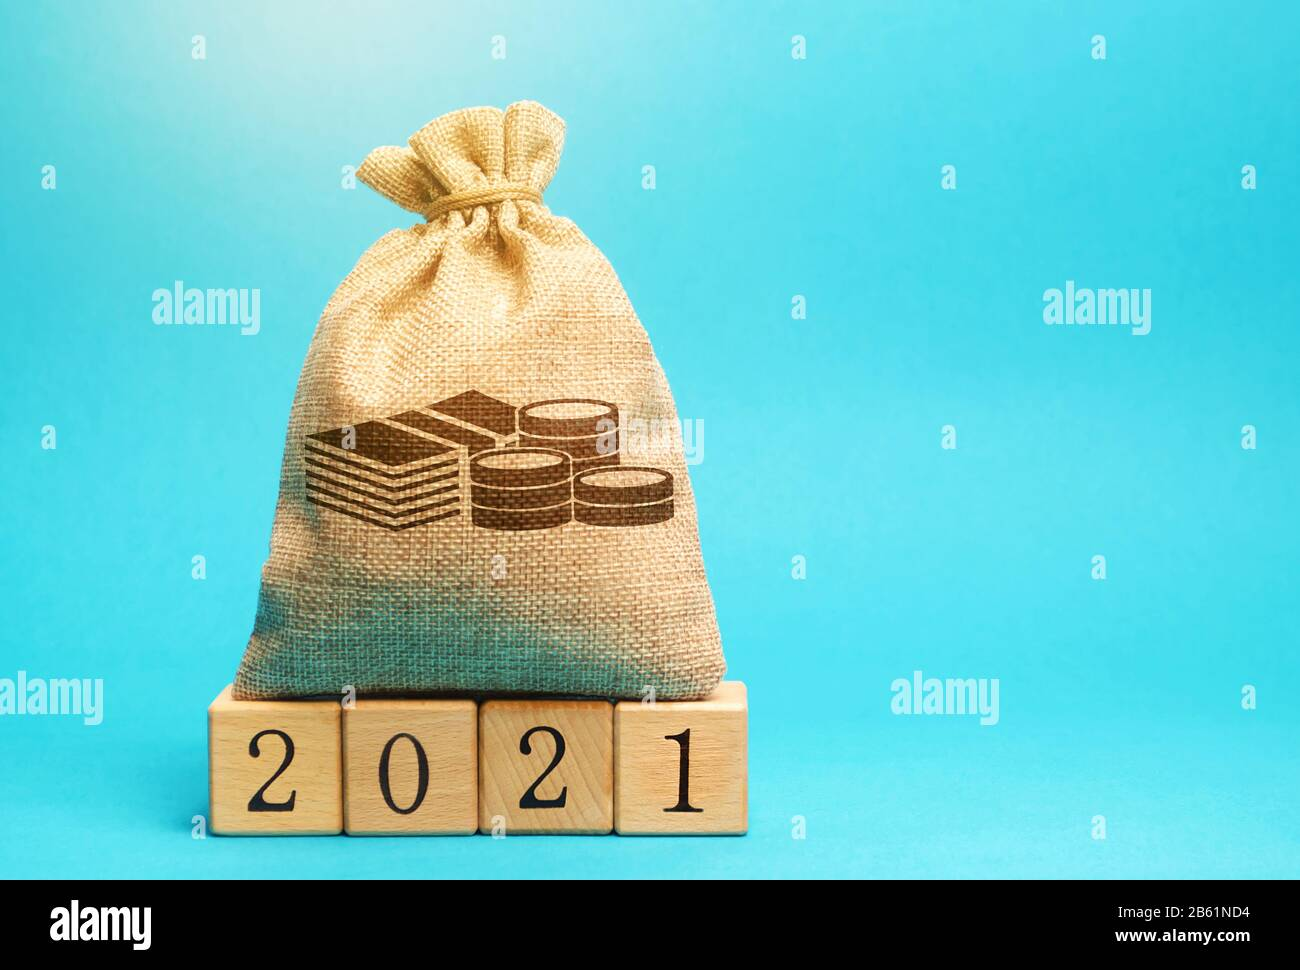 Money bag and wooden blocks 2021. Budget planning. Business and economic. Goals and plans. Investment, finance. Savings. Stock Photo